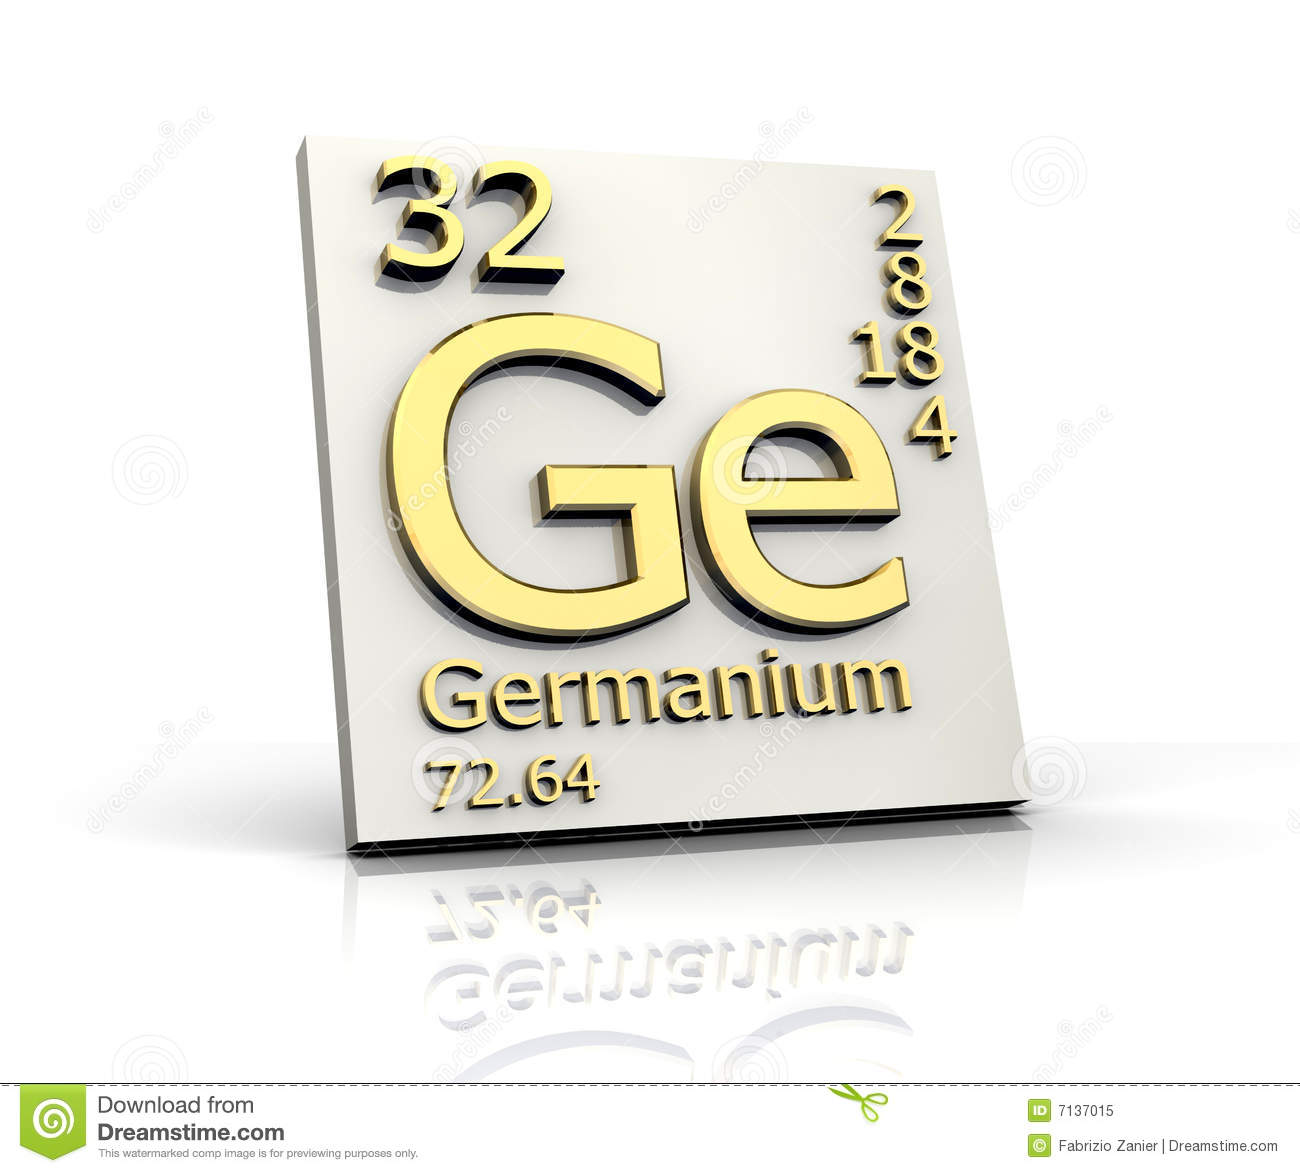 Table Of Elements 85 Of Germanium Cartoons Illustrations Vector Stock Images